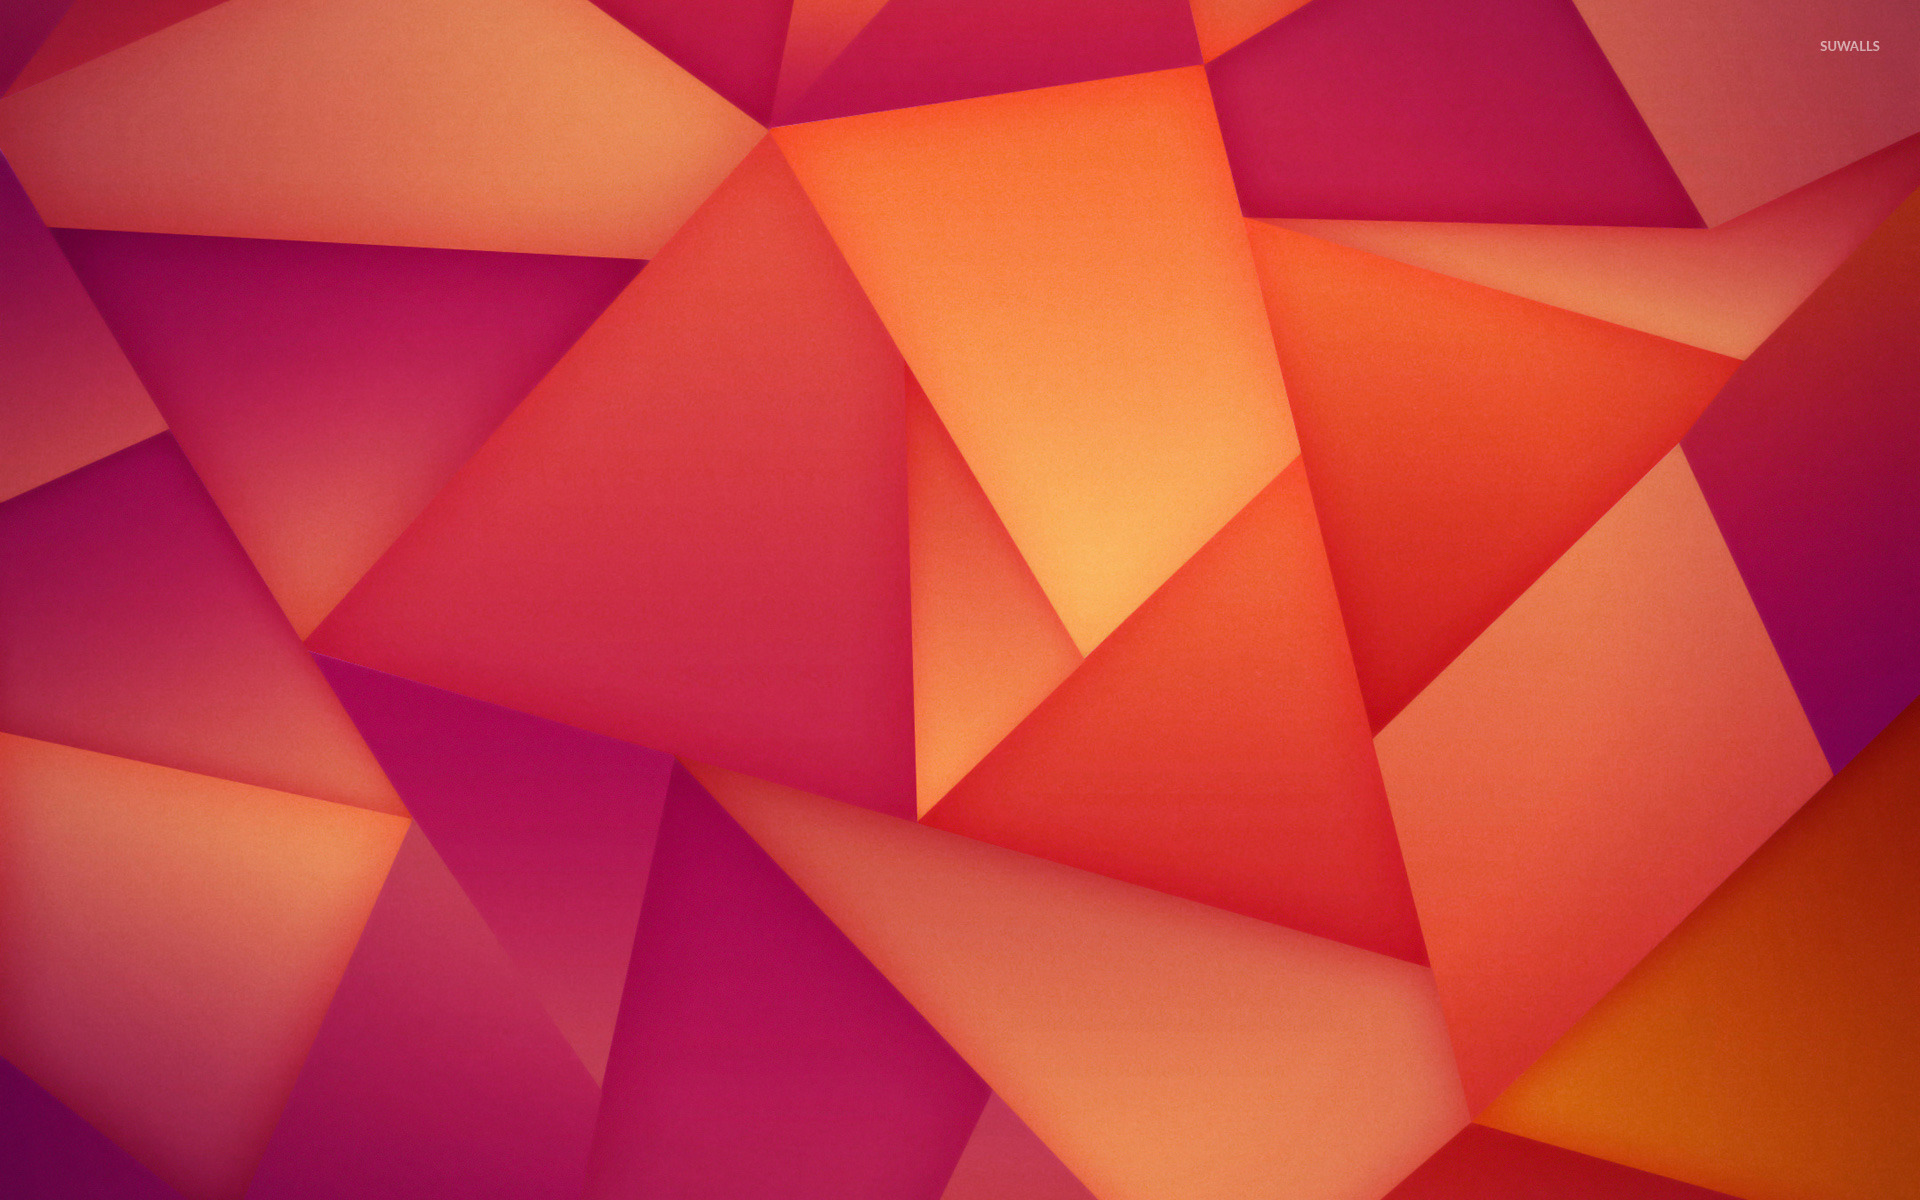 Orange And Purple Polygons Wallpaper Abstract Wallpapers